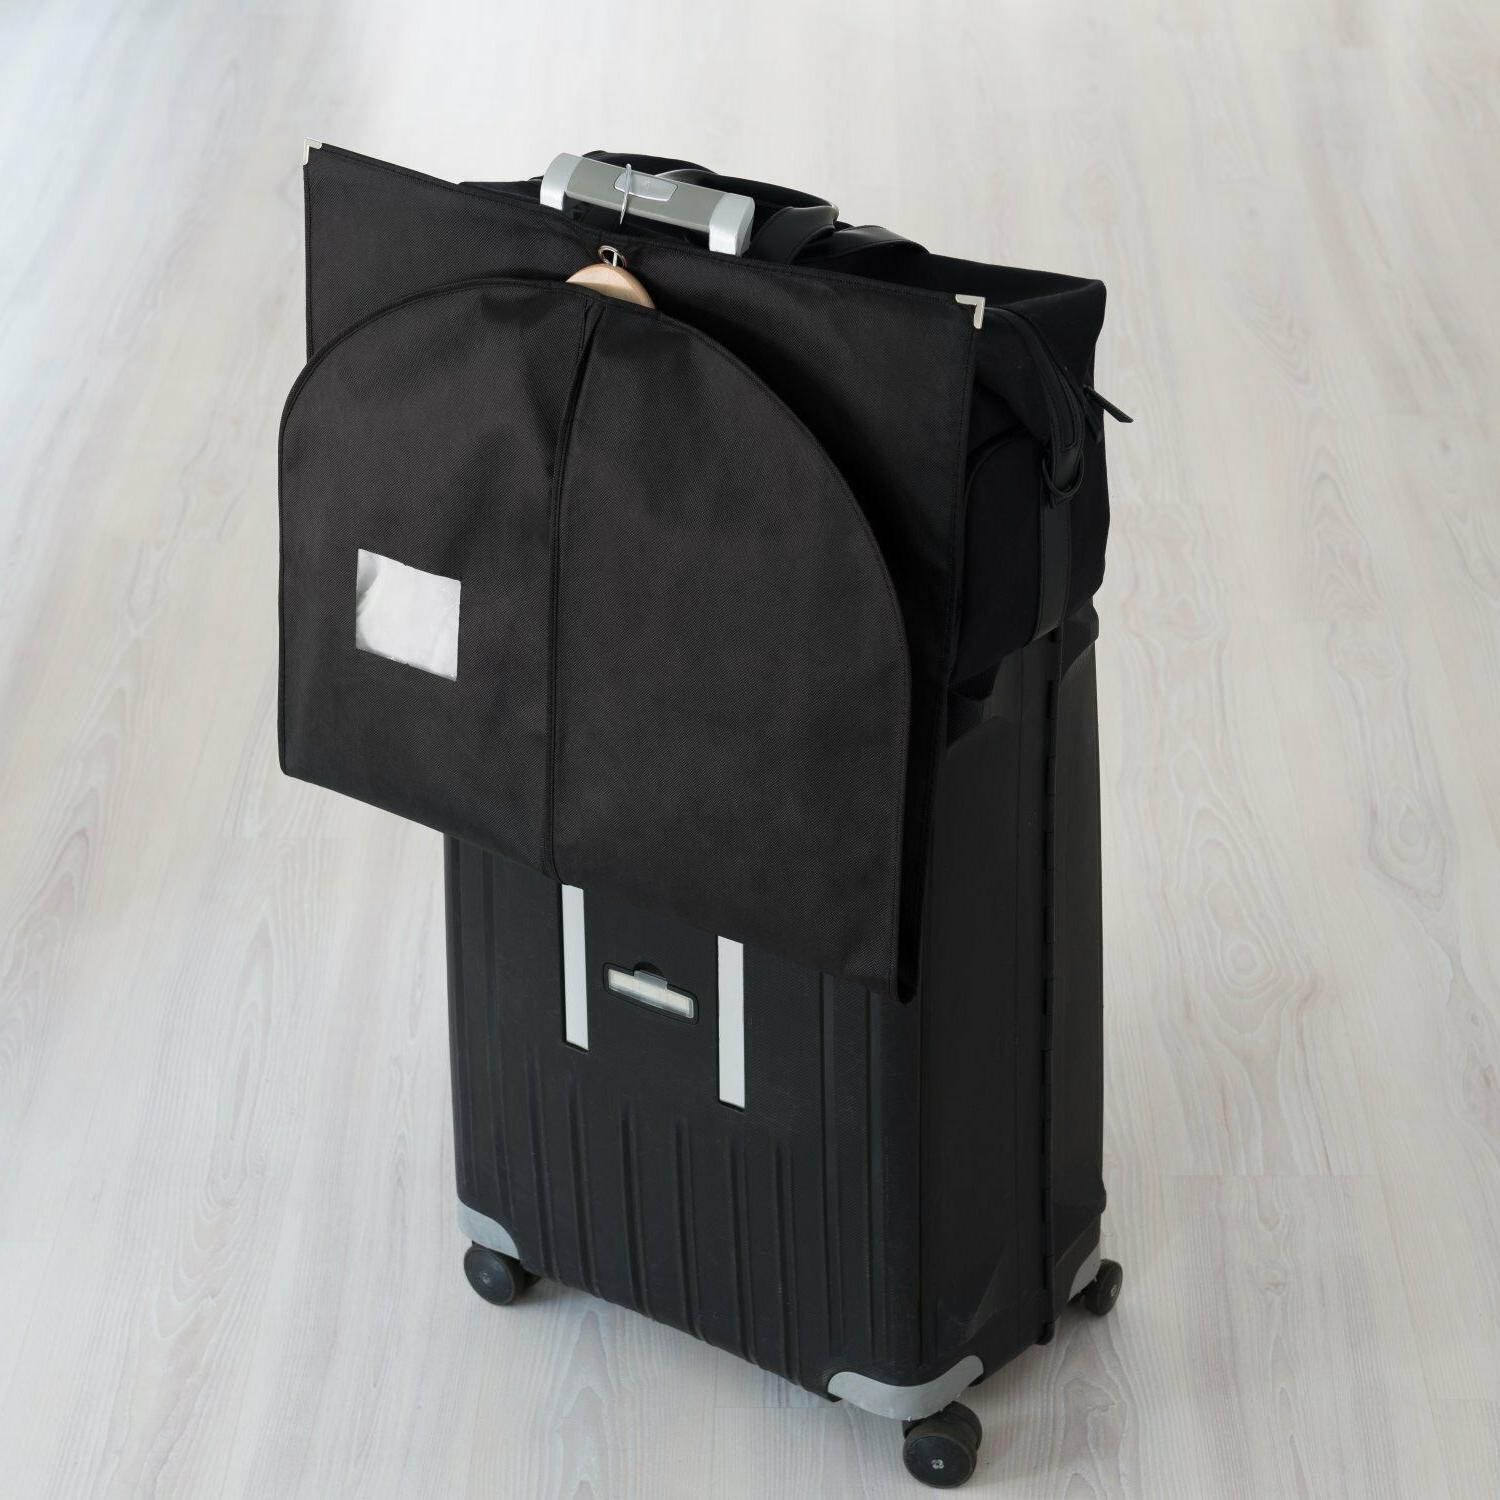 3 Pack Bag incl. | 39.4 x 23.6 inches x